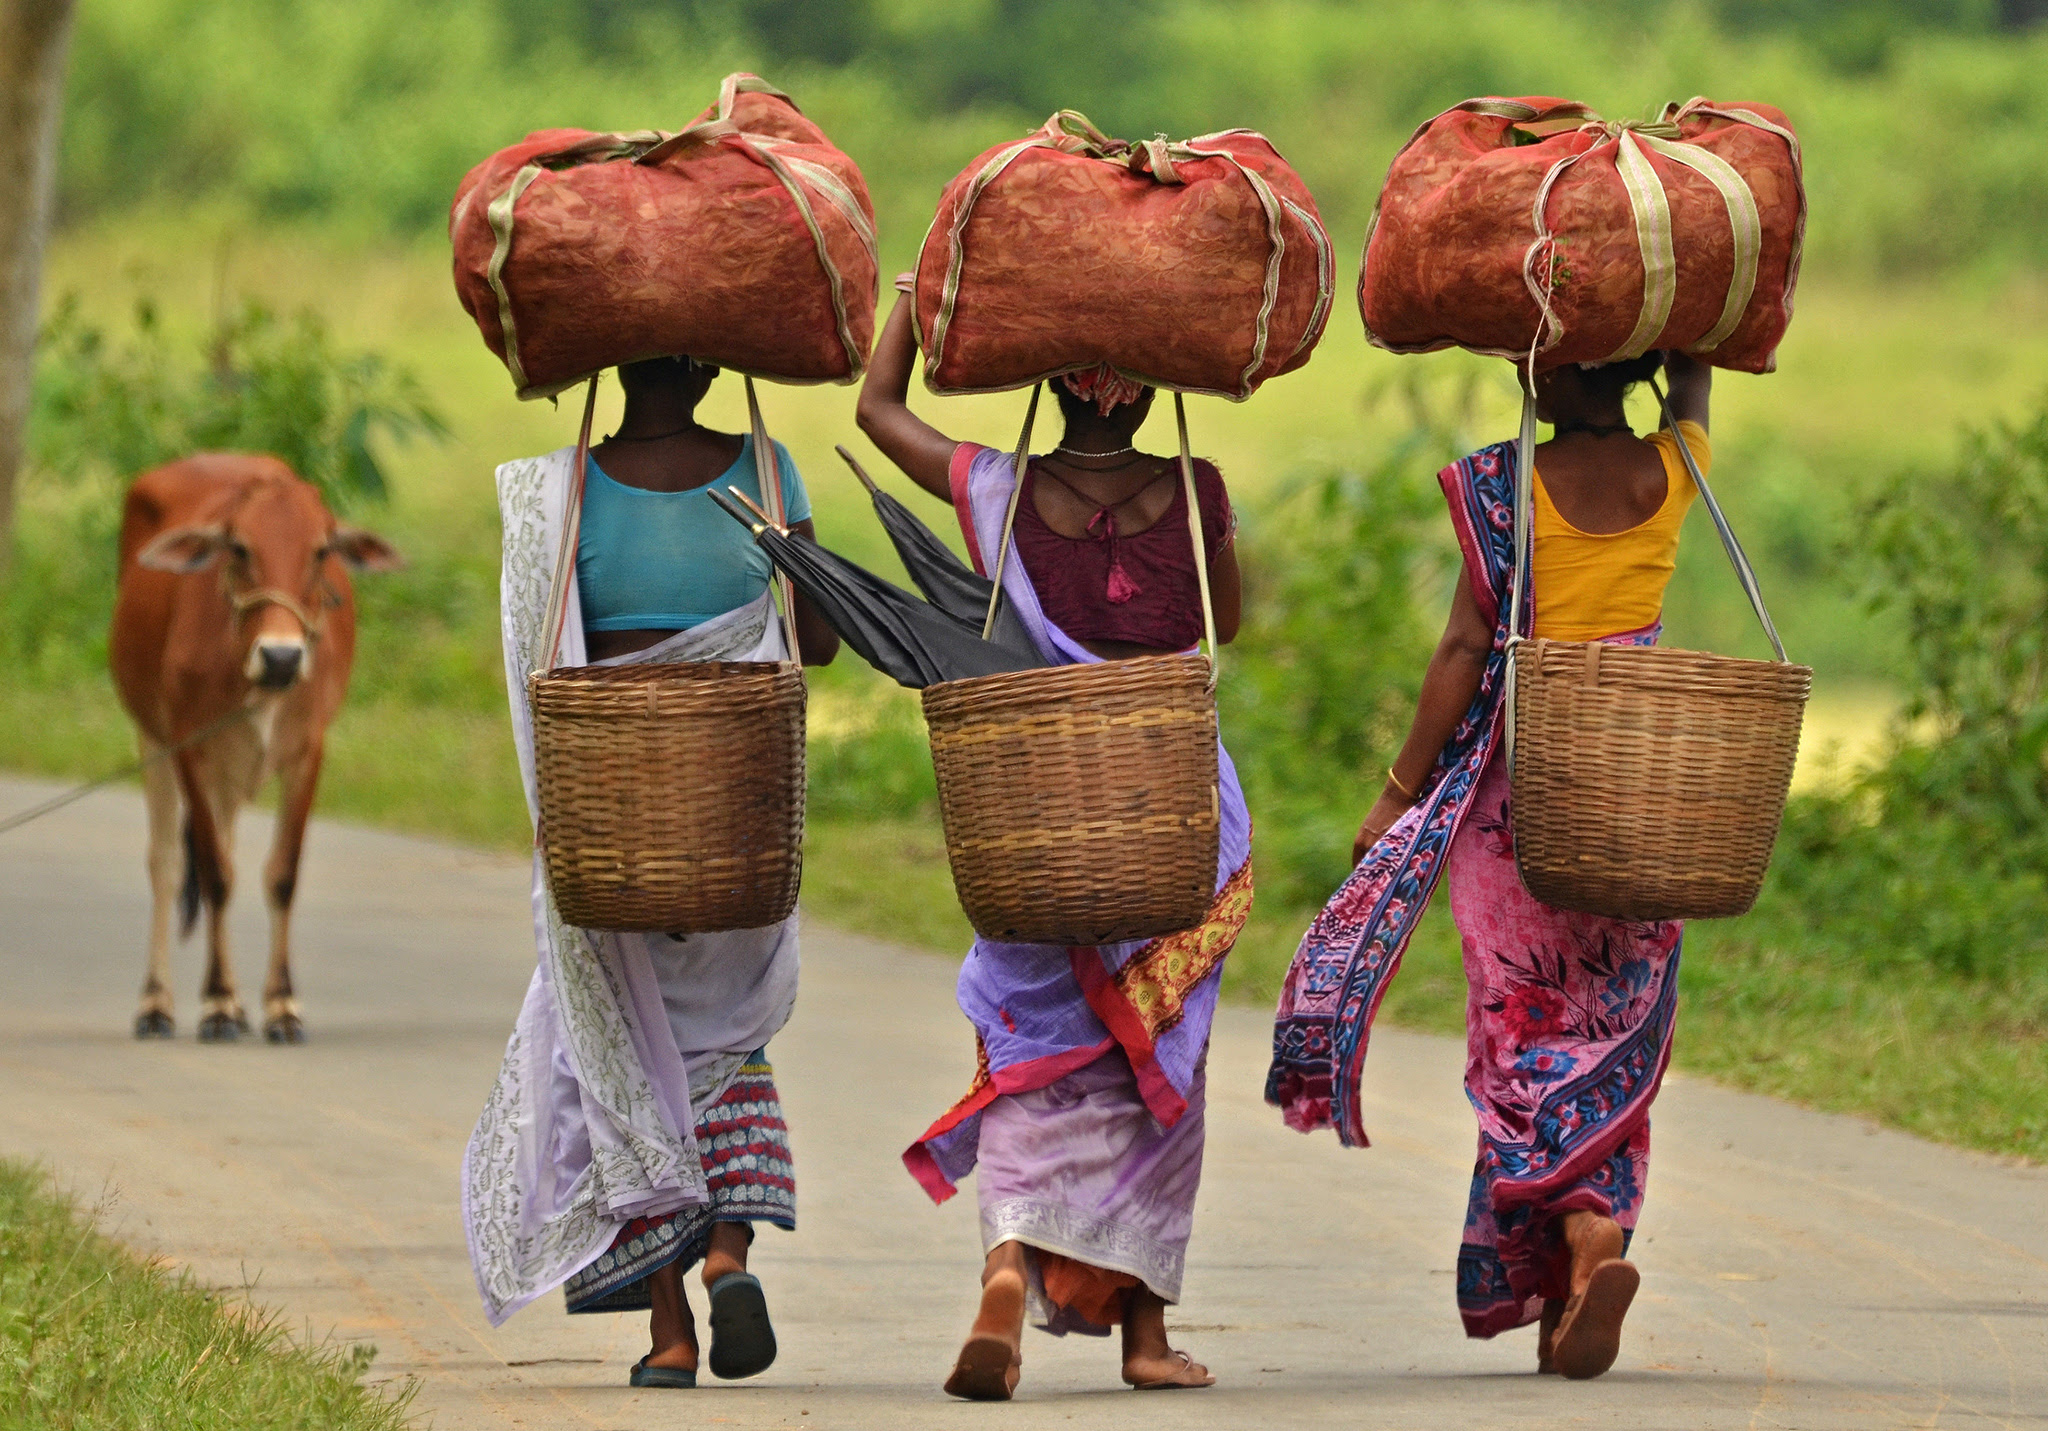 Workers carry sacks of tea leaves at a tea estate in Nagaon district in the northeastern state of Assam, India